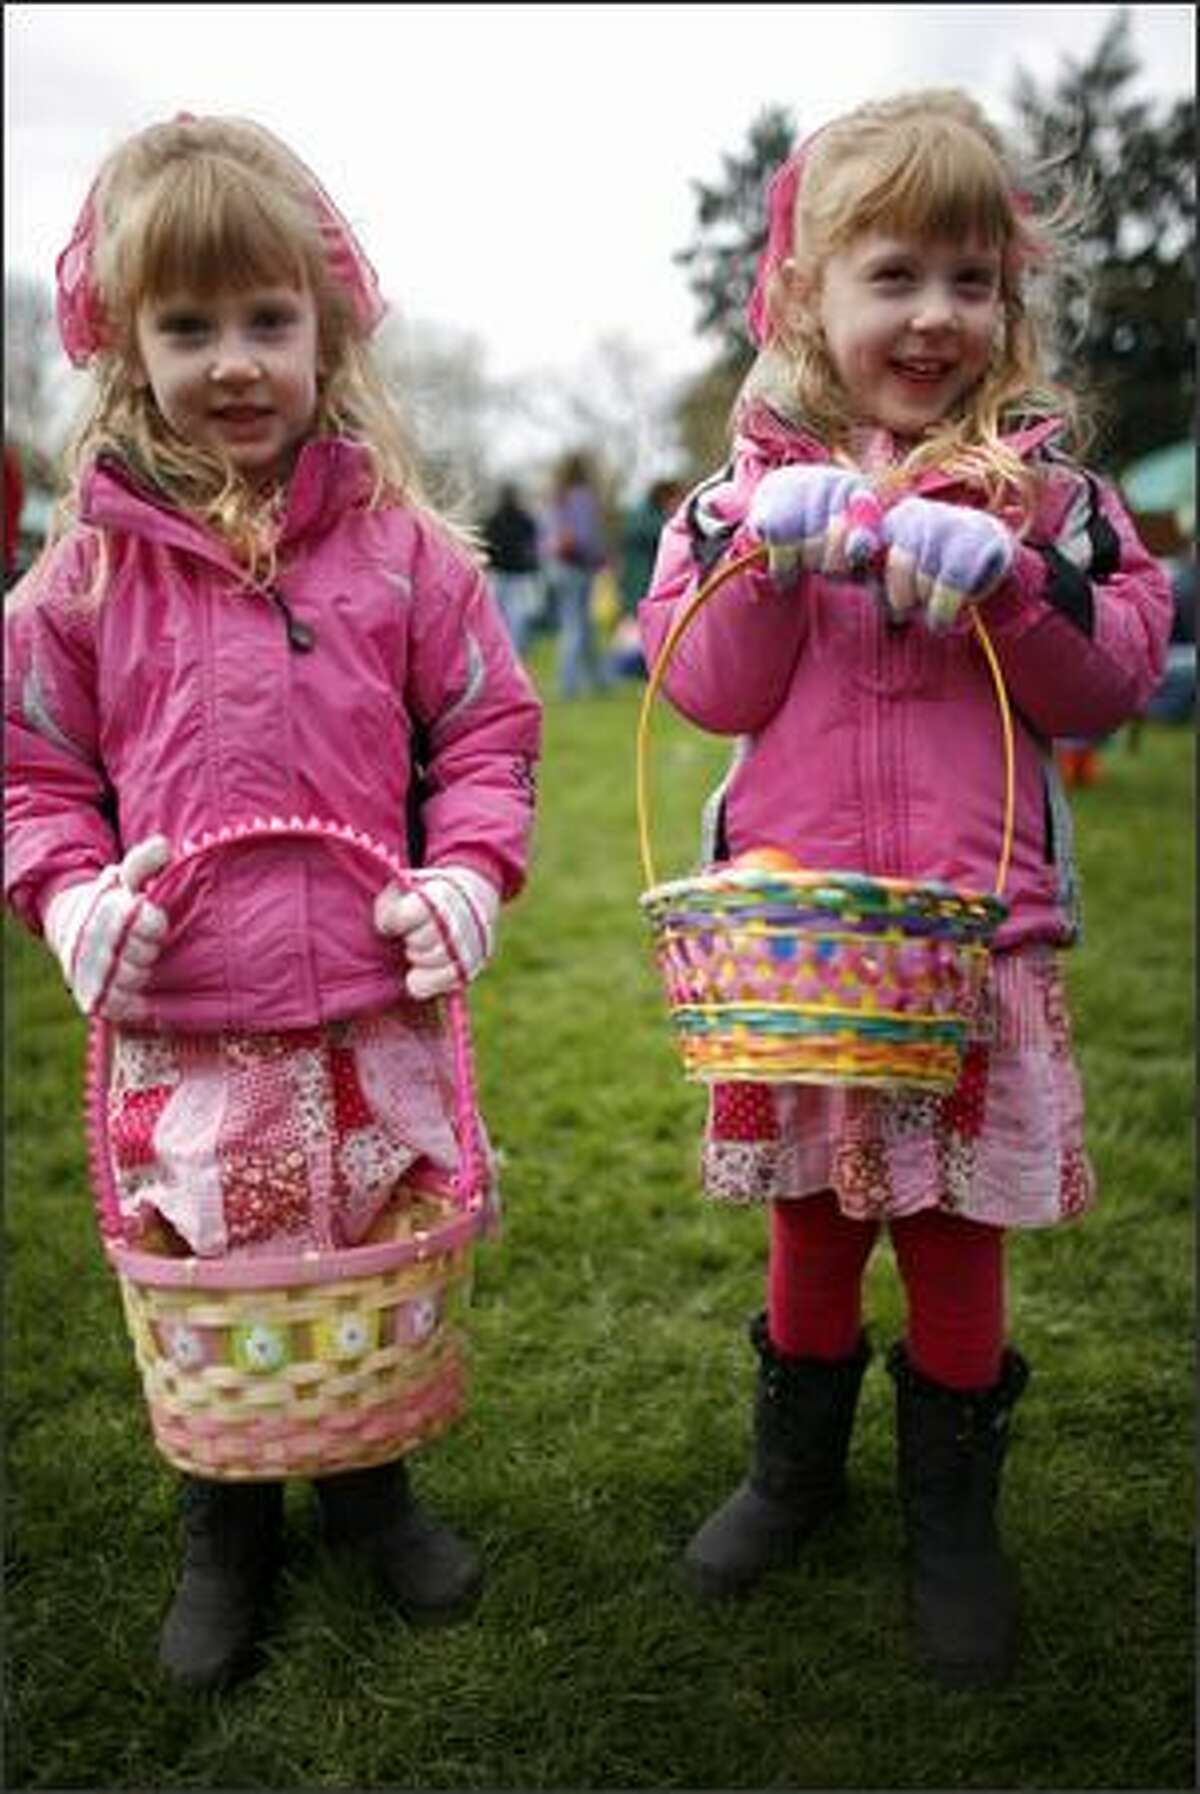 Miranda Marquardt, left, and her twin sister Marissa, both 4, show off their baskets.